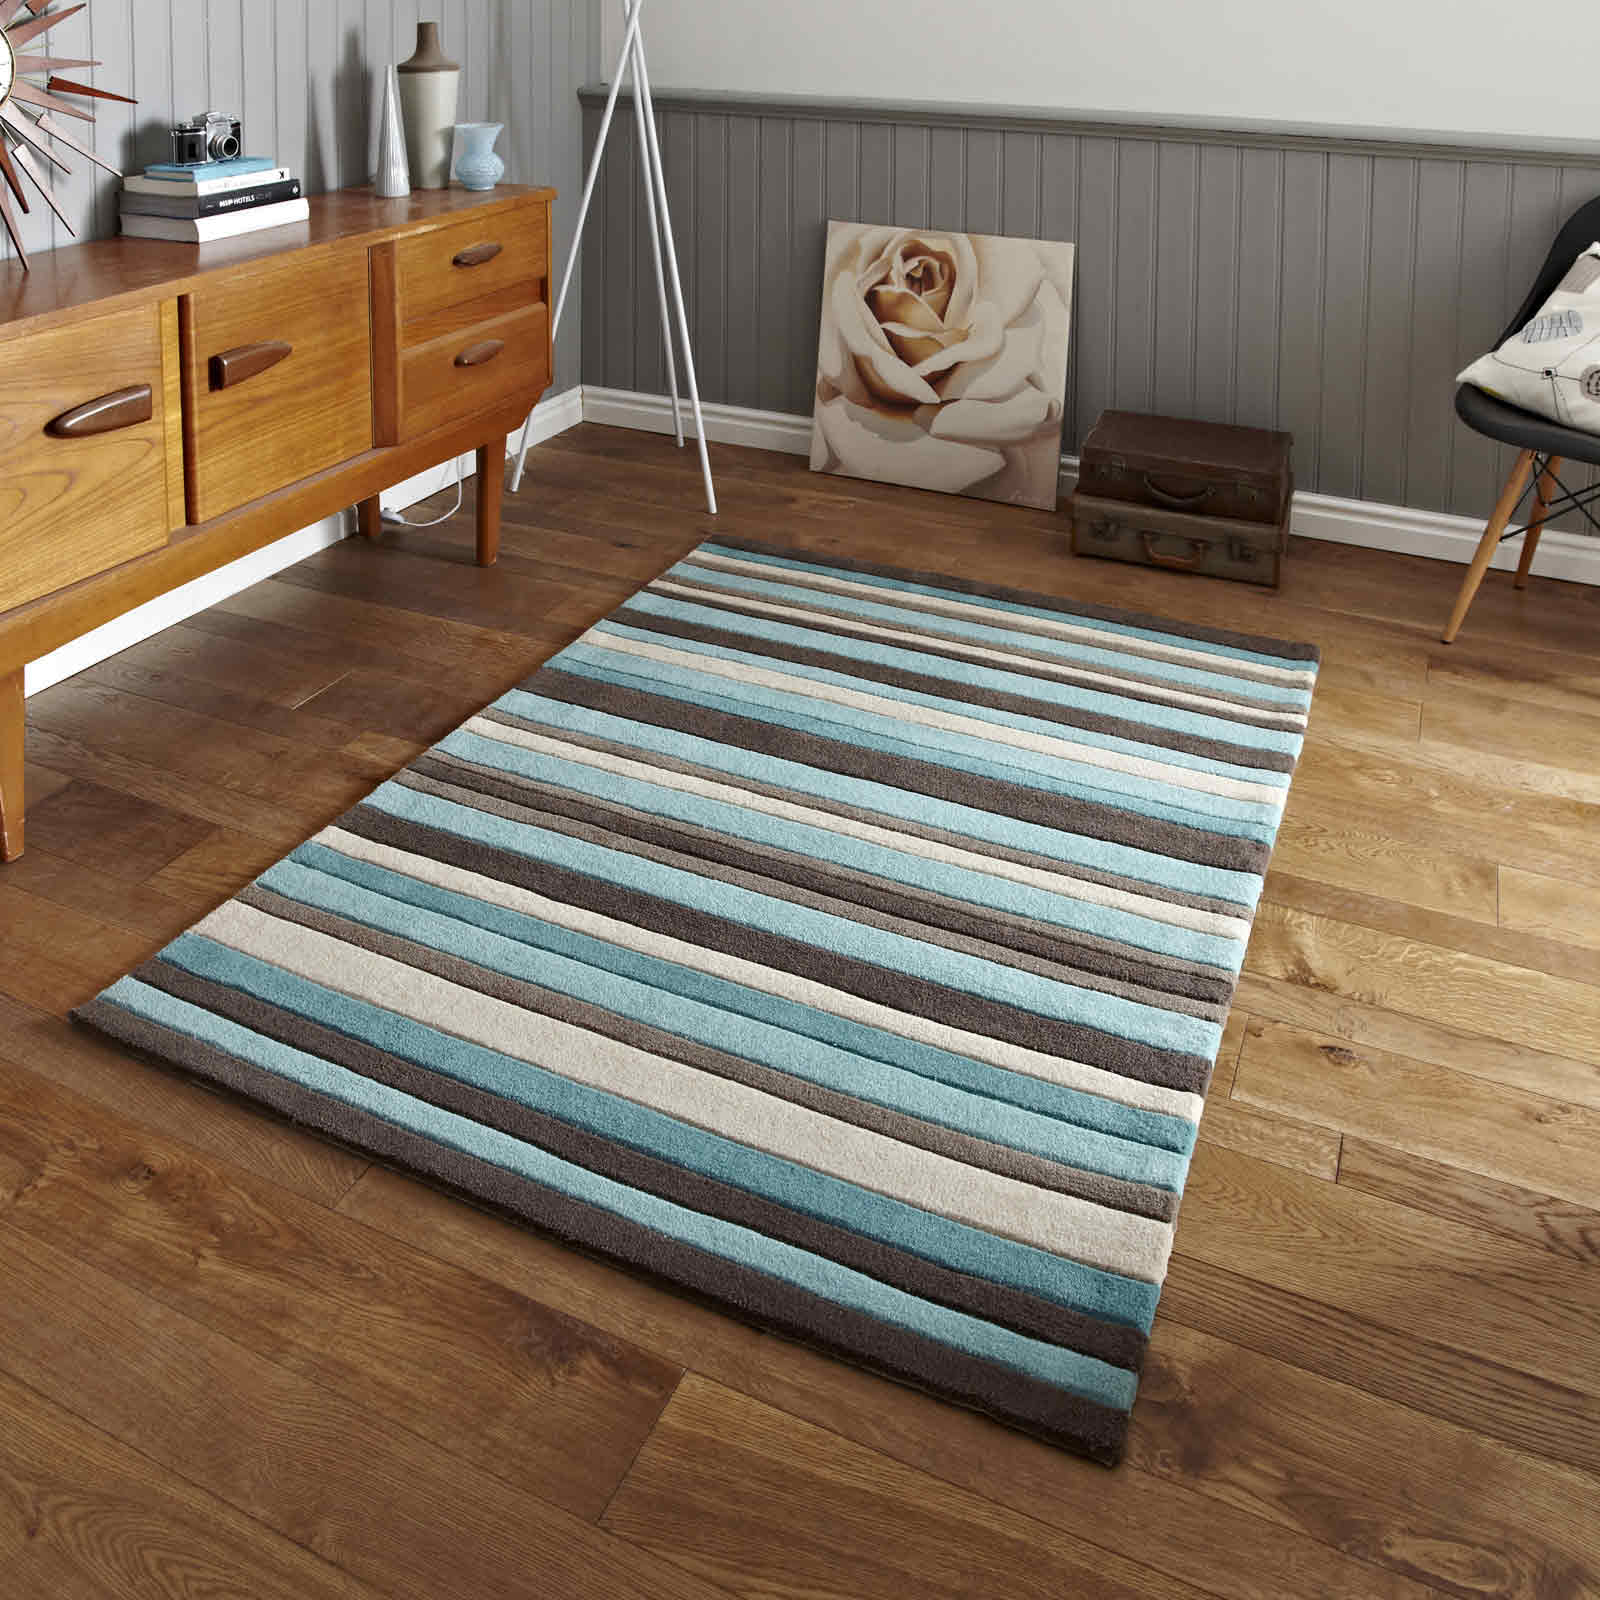 Hong Kong Rugs 2022 Blue Brown Stripes Free UK Delivery The